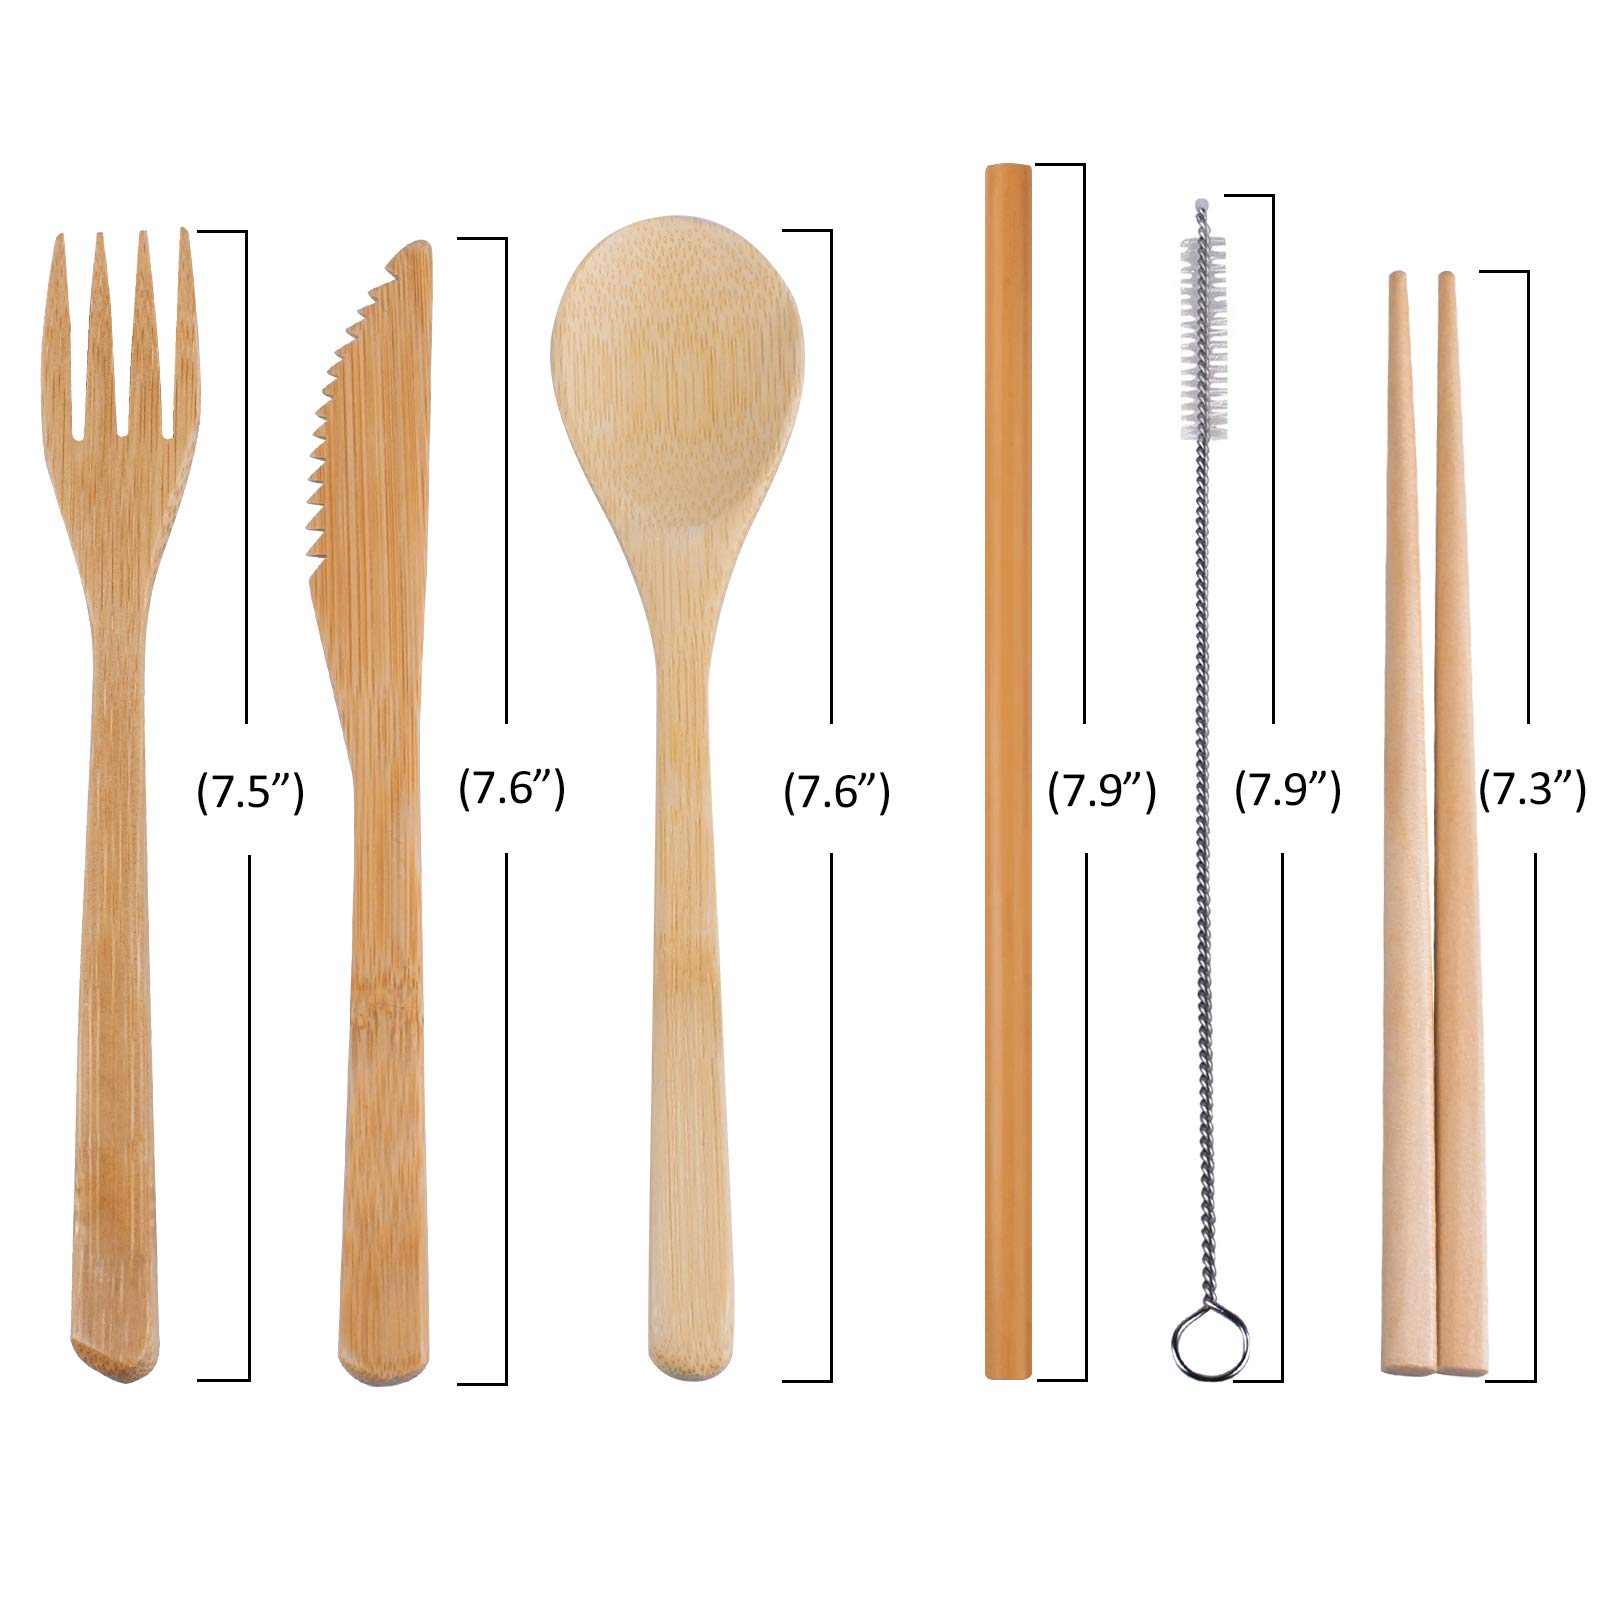 Bonviee Bamboo Cutlery Set Reusable Utensil Set include Knife, Fork, Spoon, Chopsticks, Straw and Cleaning Brush (6 Pairs) Travel Flatware Set for Camping Office Lunch School Home